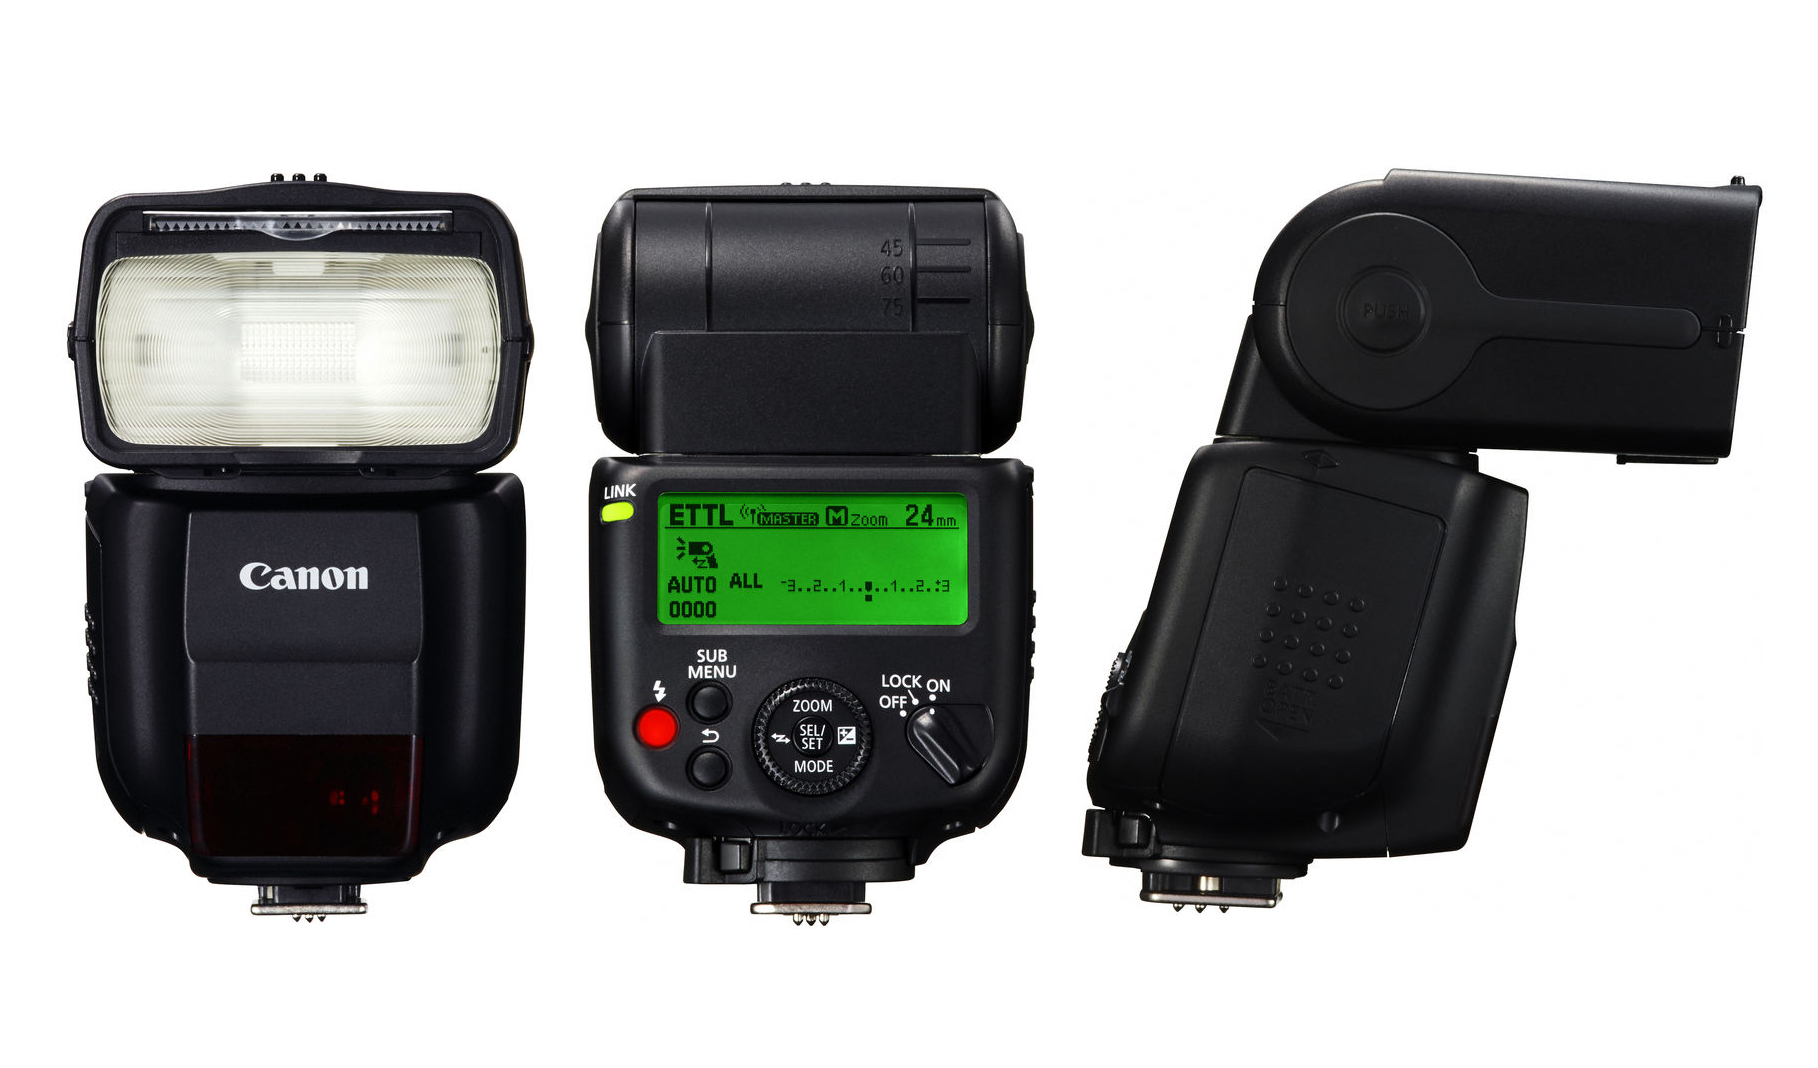 Canon Speedlite 430EX III-RT Flash now Available for Pre-order at B&H Photo Video & Adorama   Canon Deal